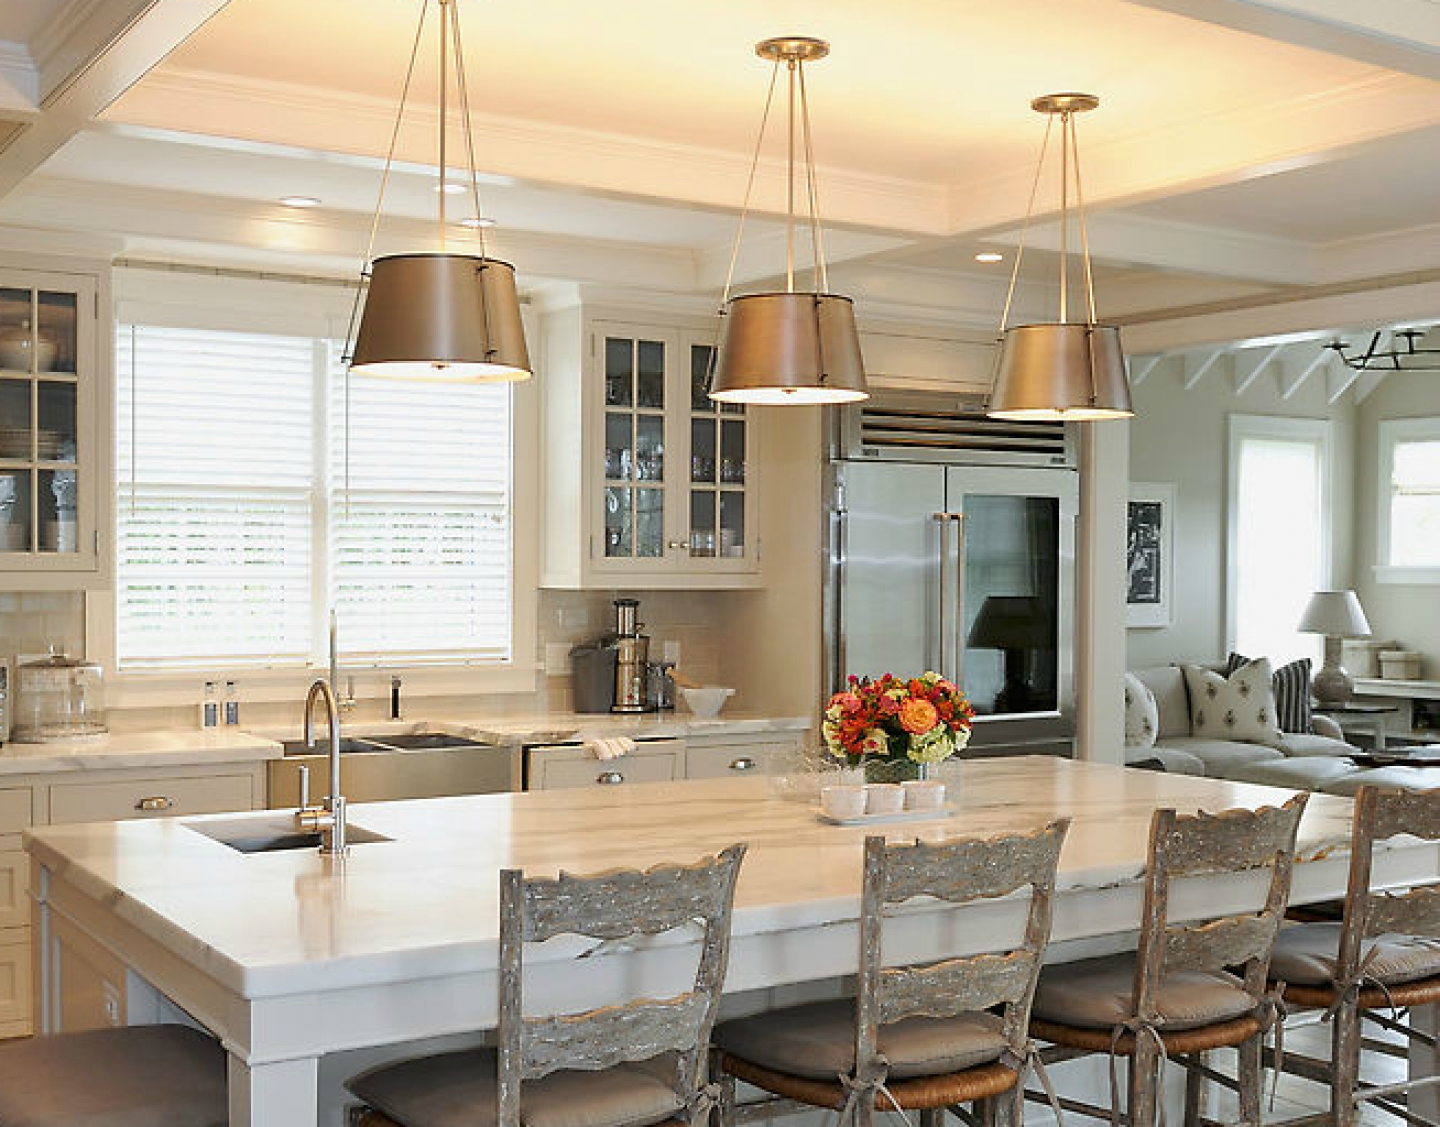 french country kitchen images photo - 2